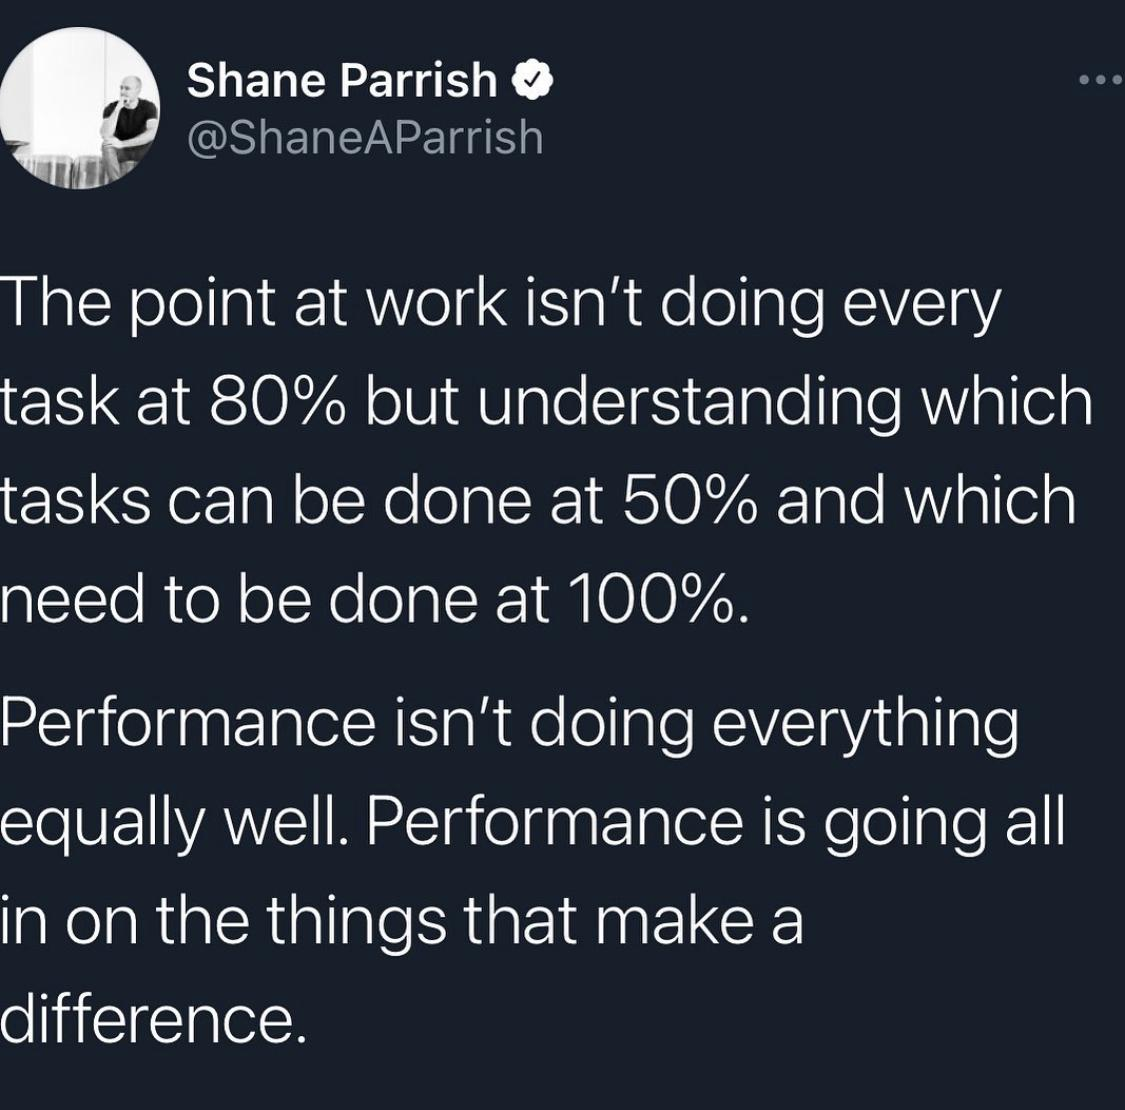 Shane Parrish 9 .. @ShaneAParrish The point at work isn't doing every task at 80% but understanding which tasks can be done at 50% and which need to be done at 100%. Performance isn't doing everything equally well. Performance is going all in on the things that make a difference. https://inspirational.ly